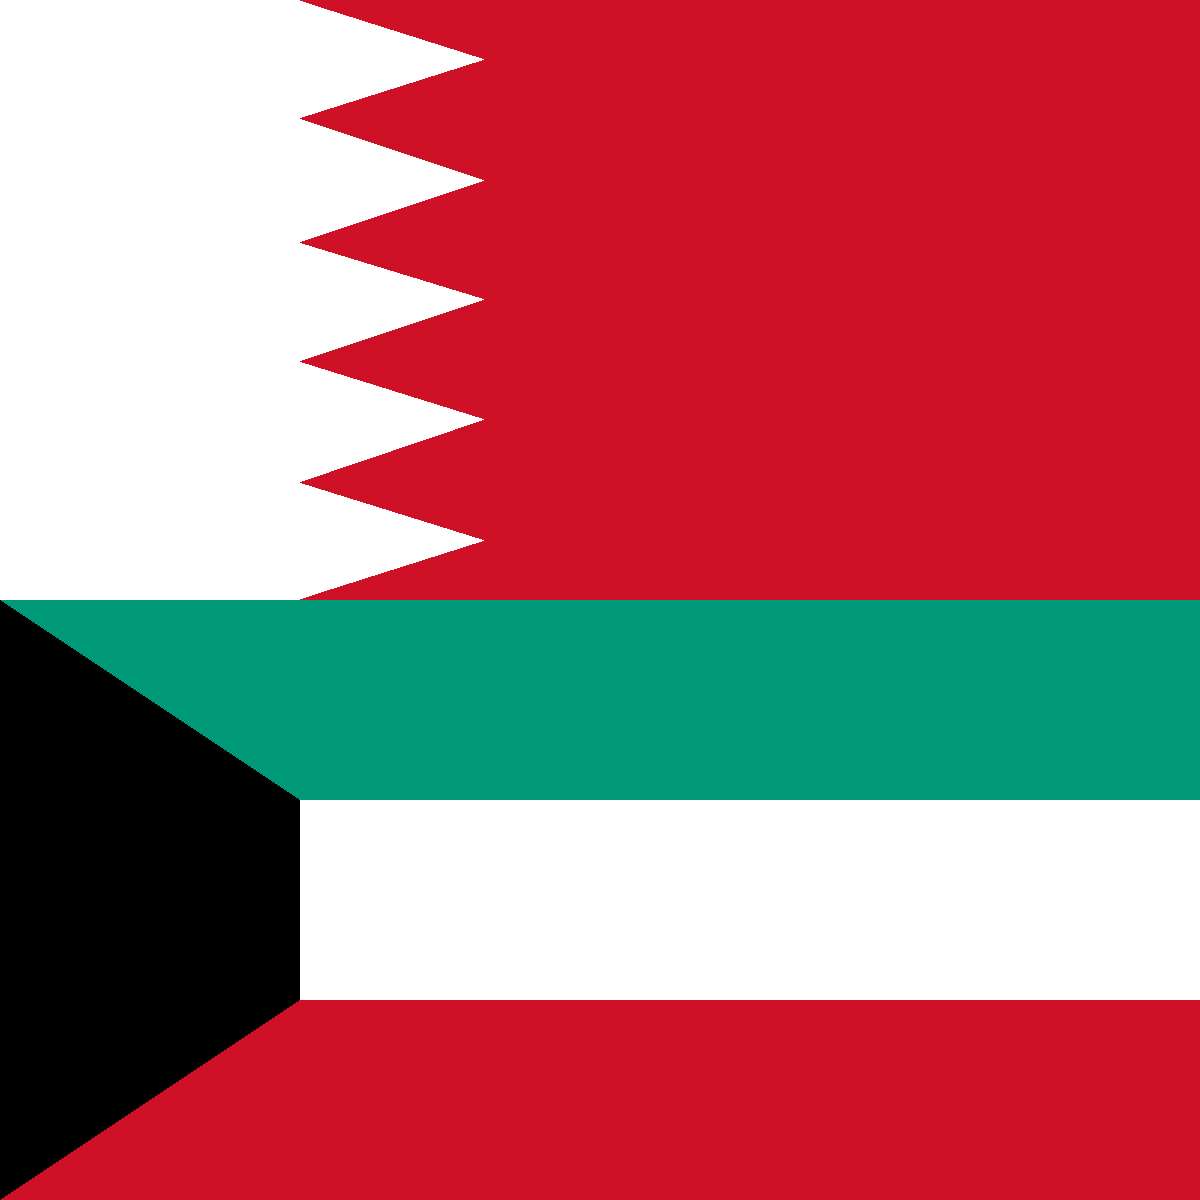 Image Flags Of Bahrain And Kuwaitpng Deadliest Fiction Wiki - Bahrain flags